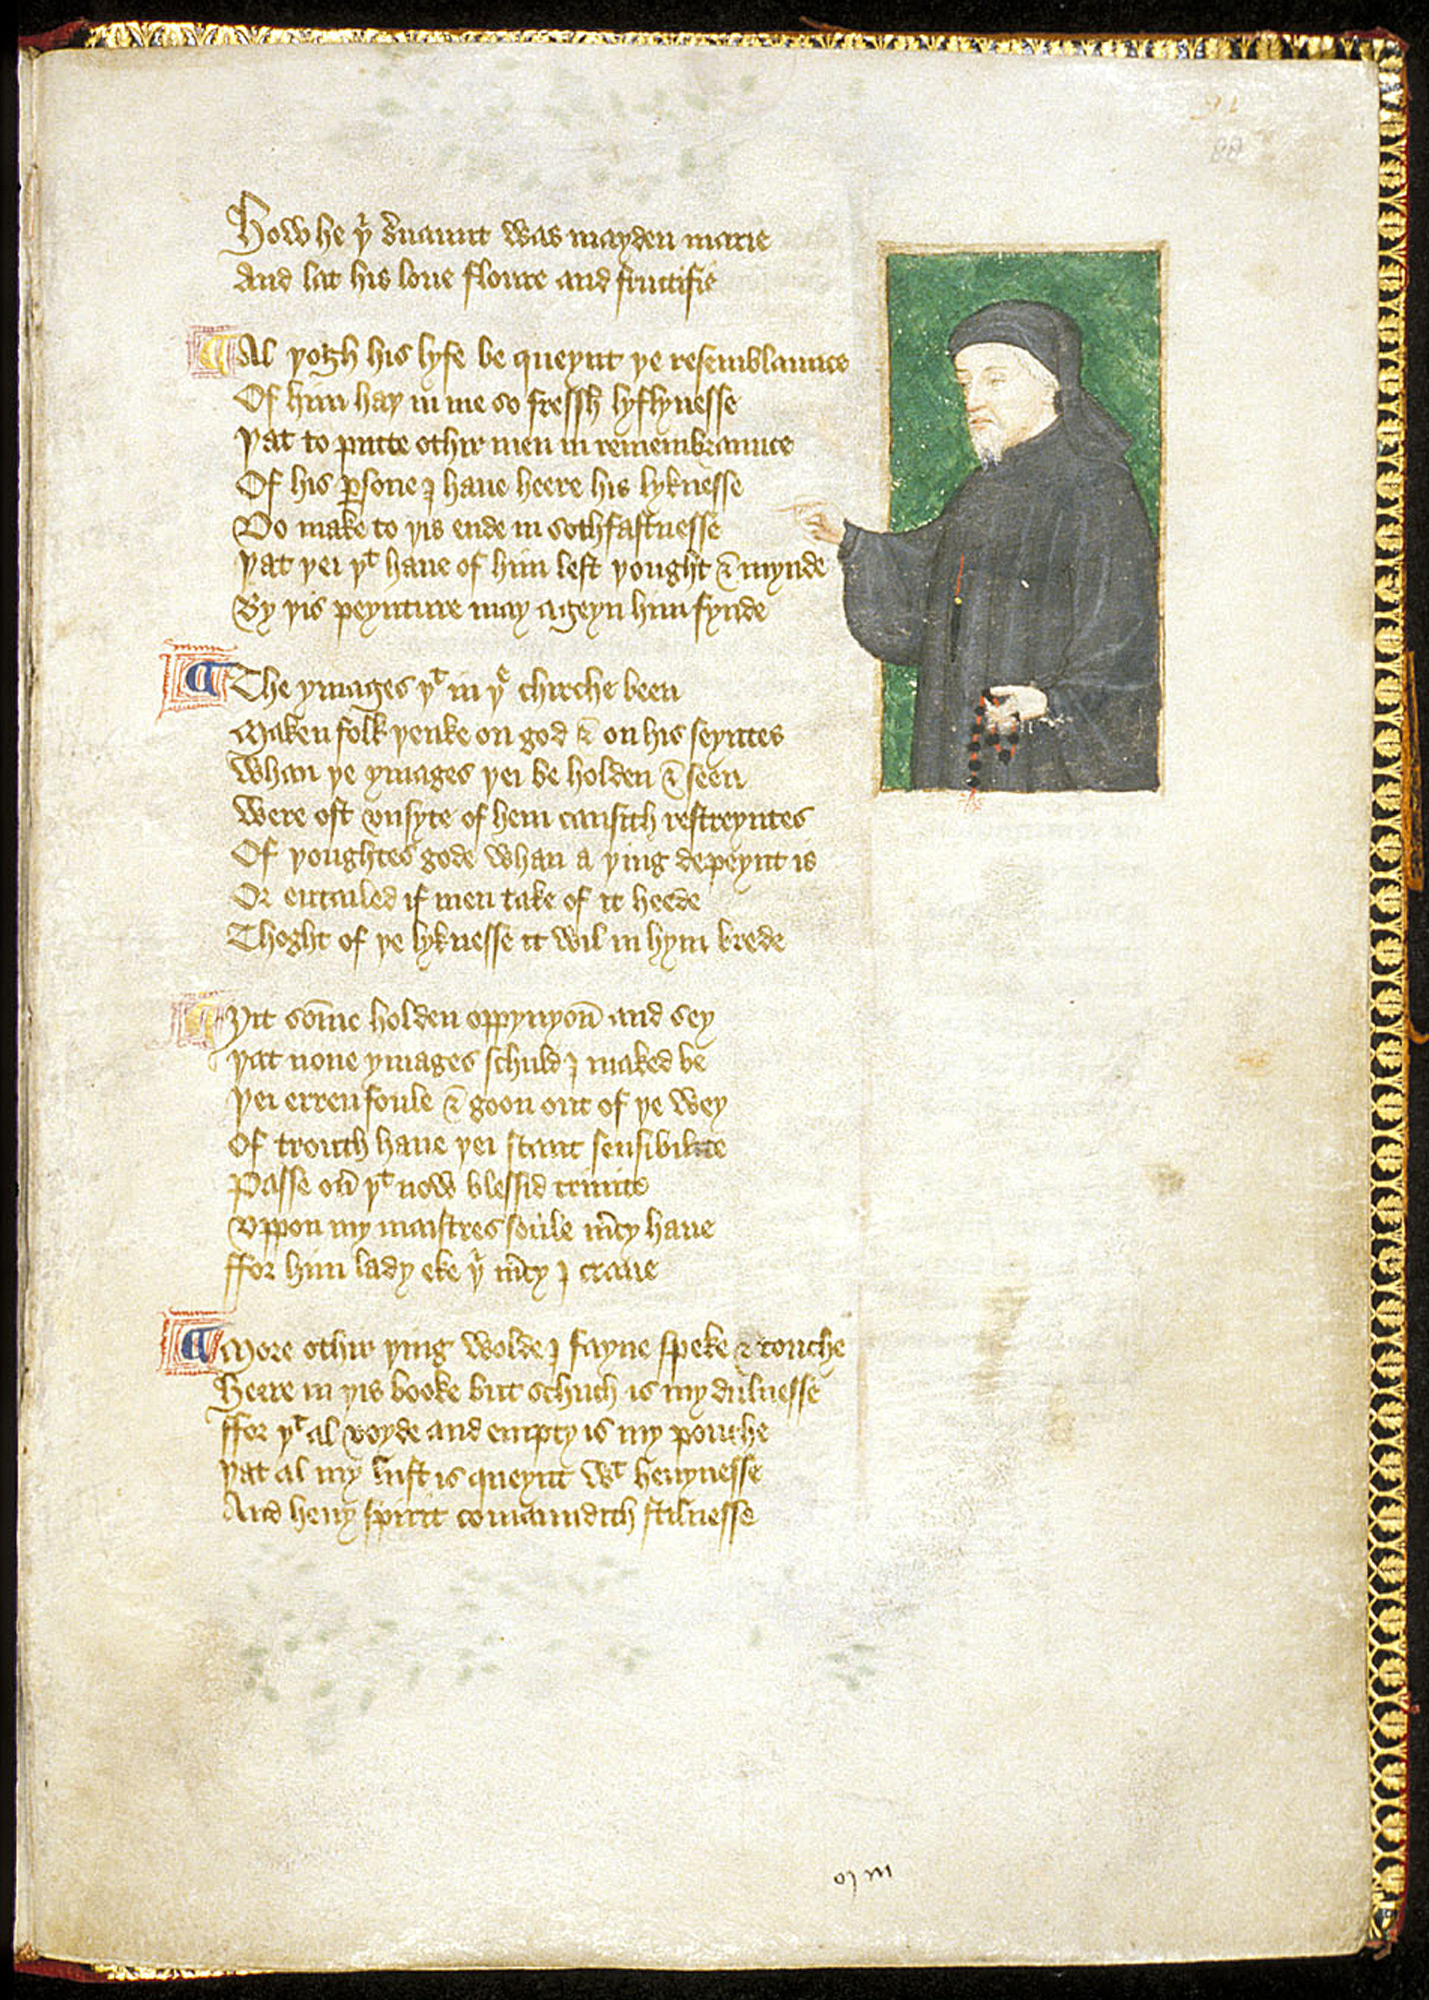 Miniature of Chaucer